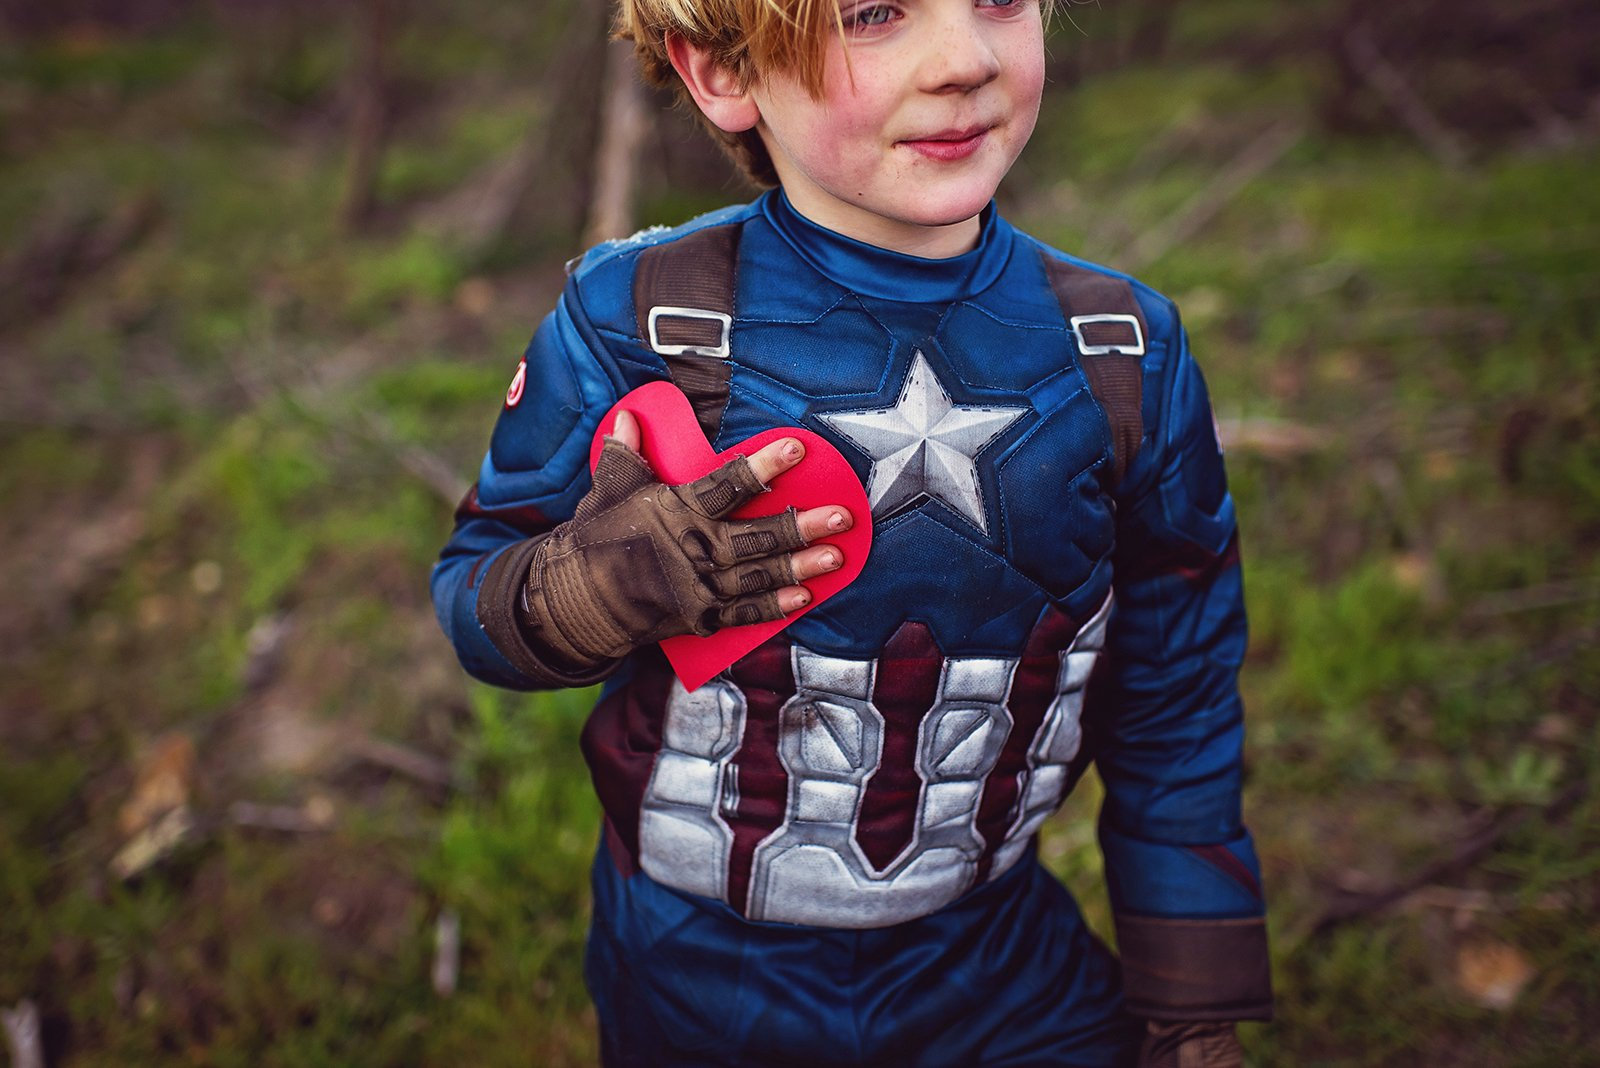 Carla Blumenkrantz-boy-dressed-as-superhero-holding-heart_carla_blumenkrantz